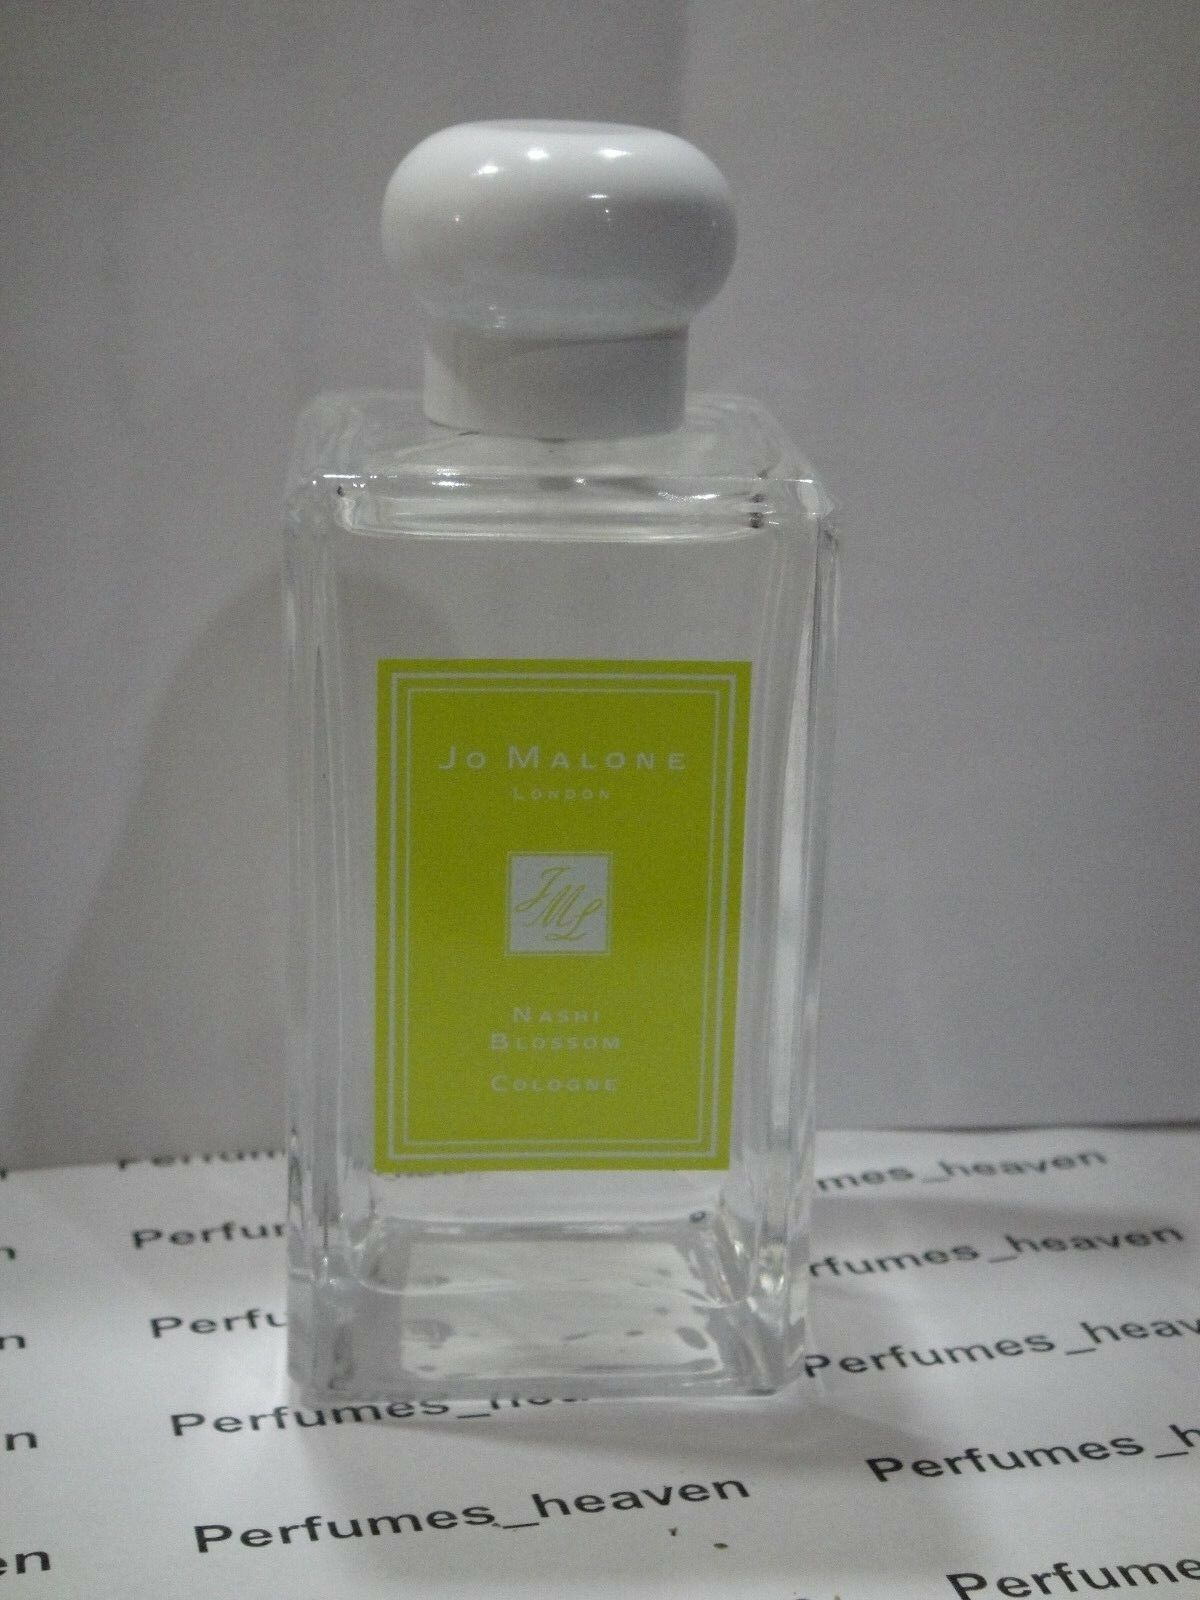 Jo Malone Nashi Blossom Cologne 34 Oz 100 Ml 14499 Picclick 1 Of 2only Available